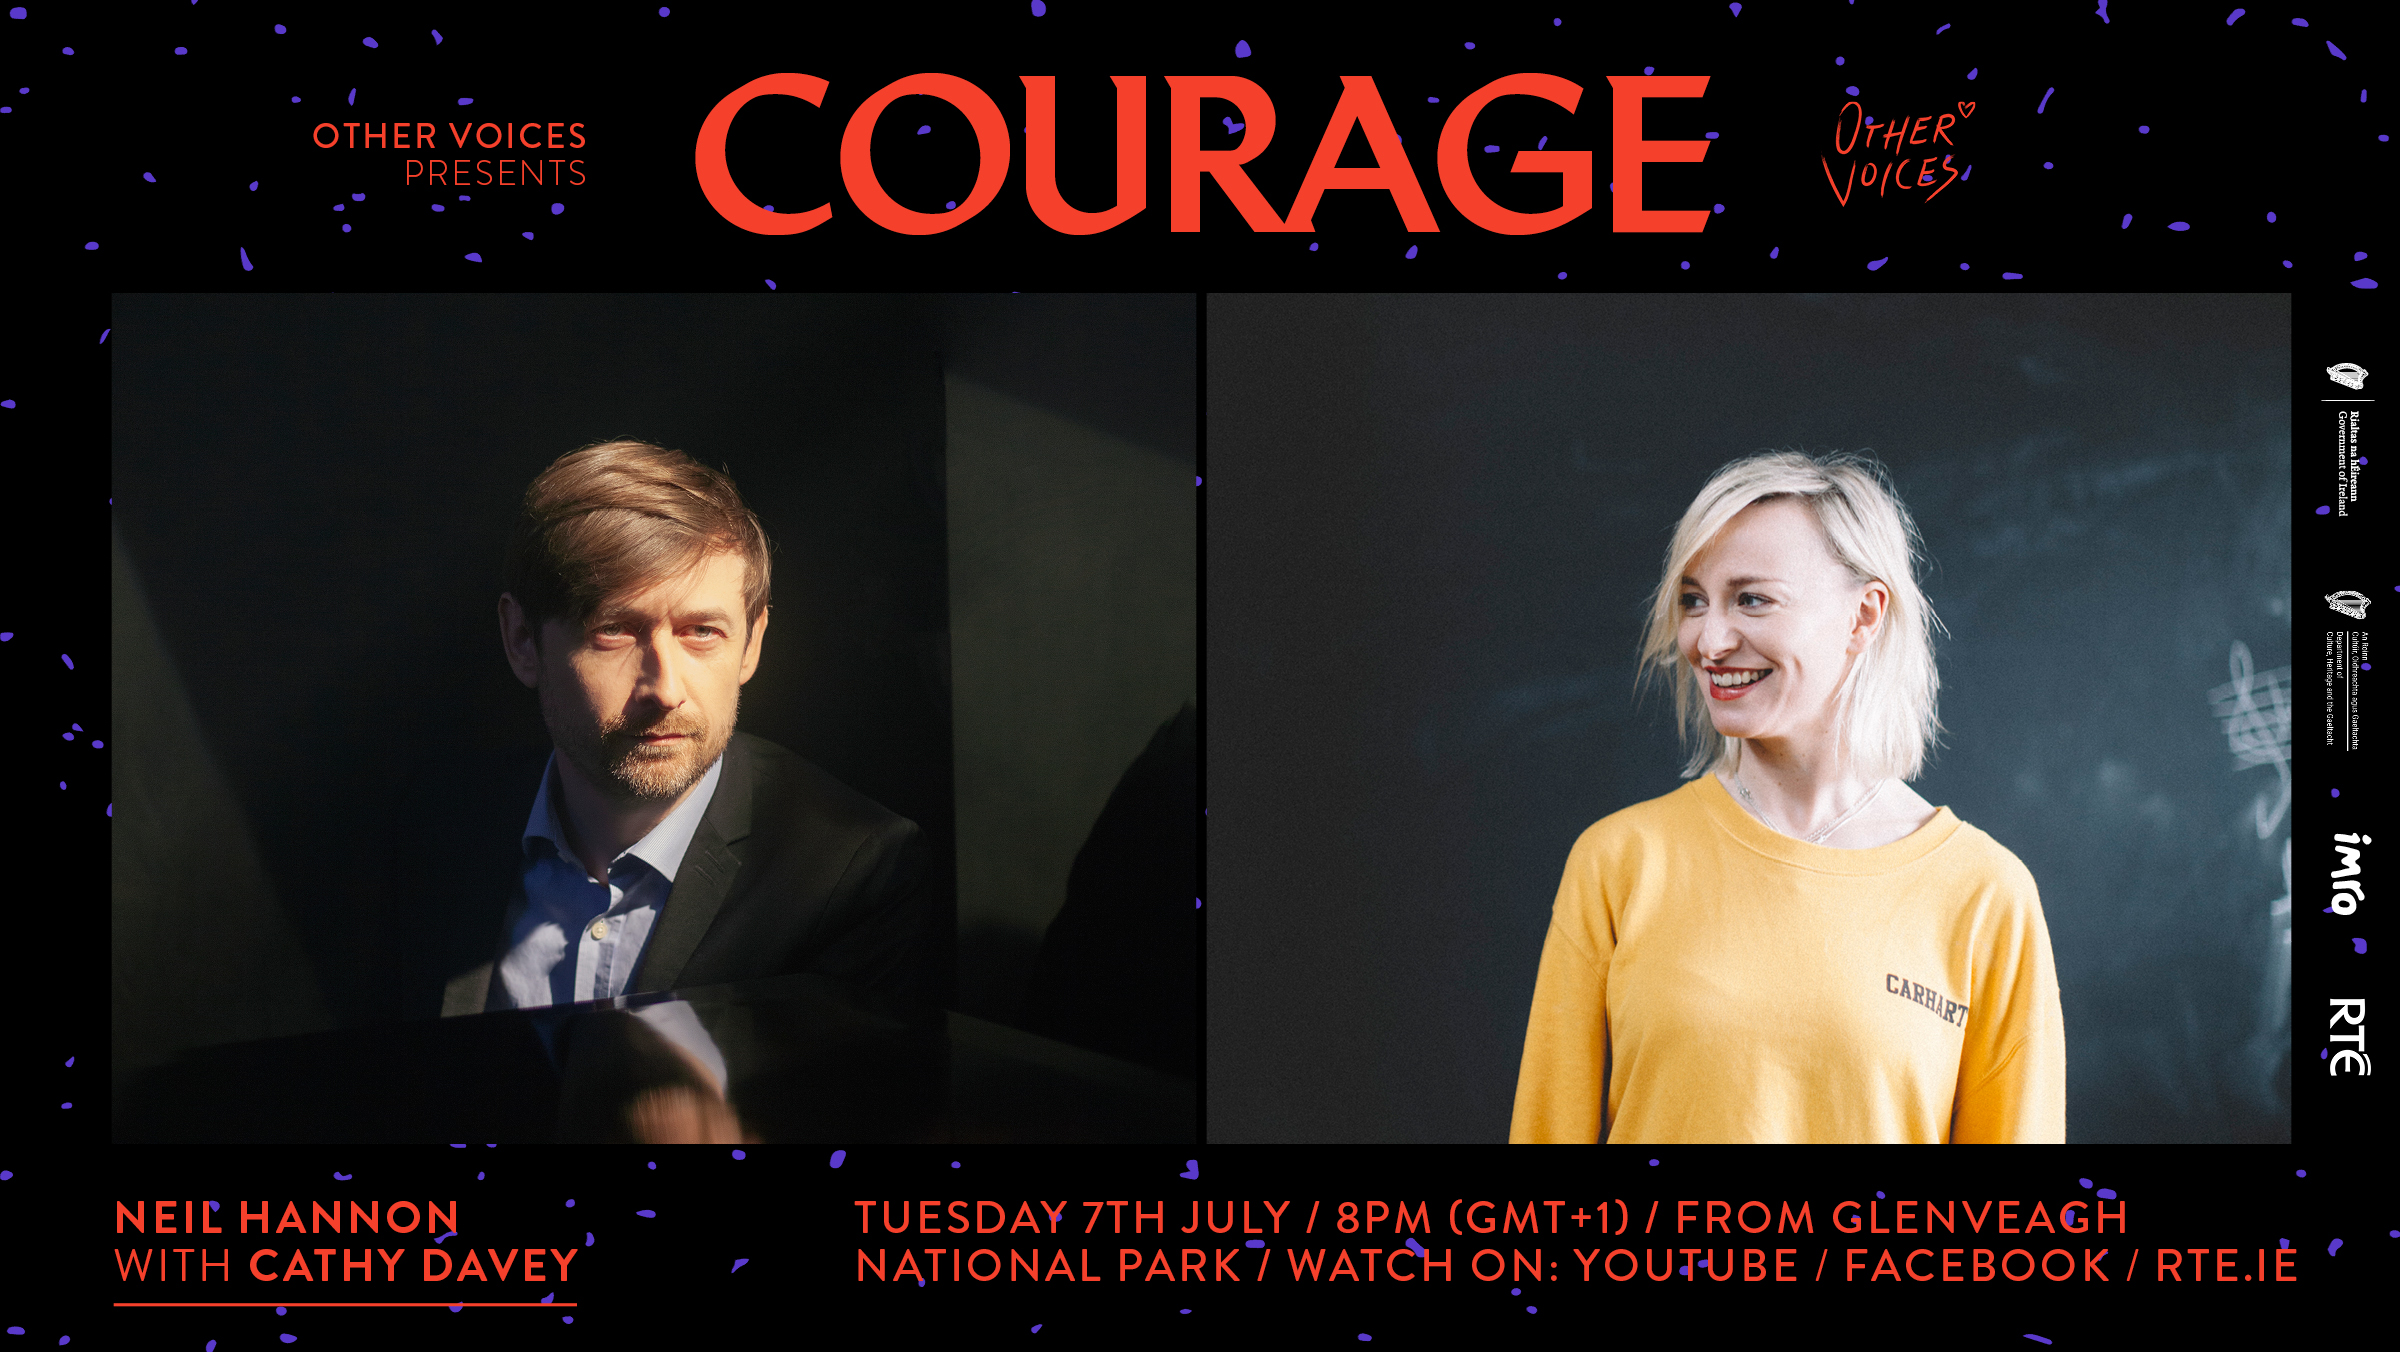 Courage: Neil Hannan accompanied by Cathy Davey, introducing Eve Belle